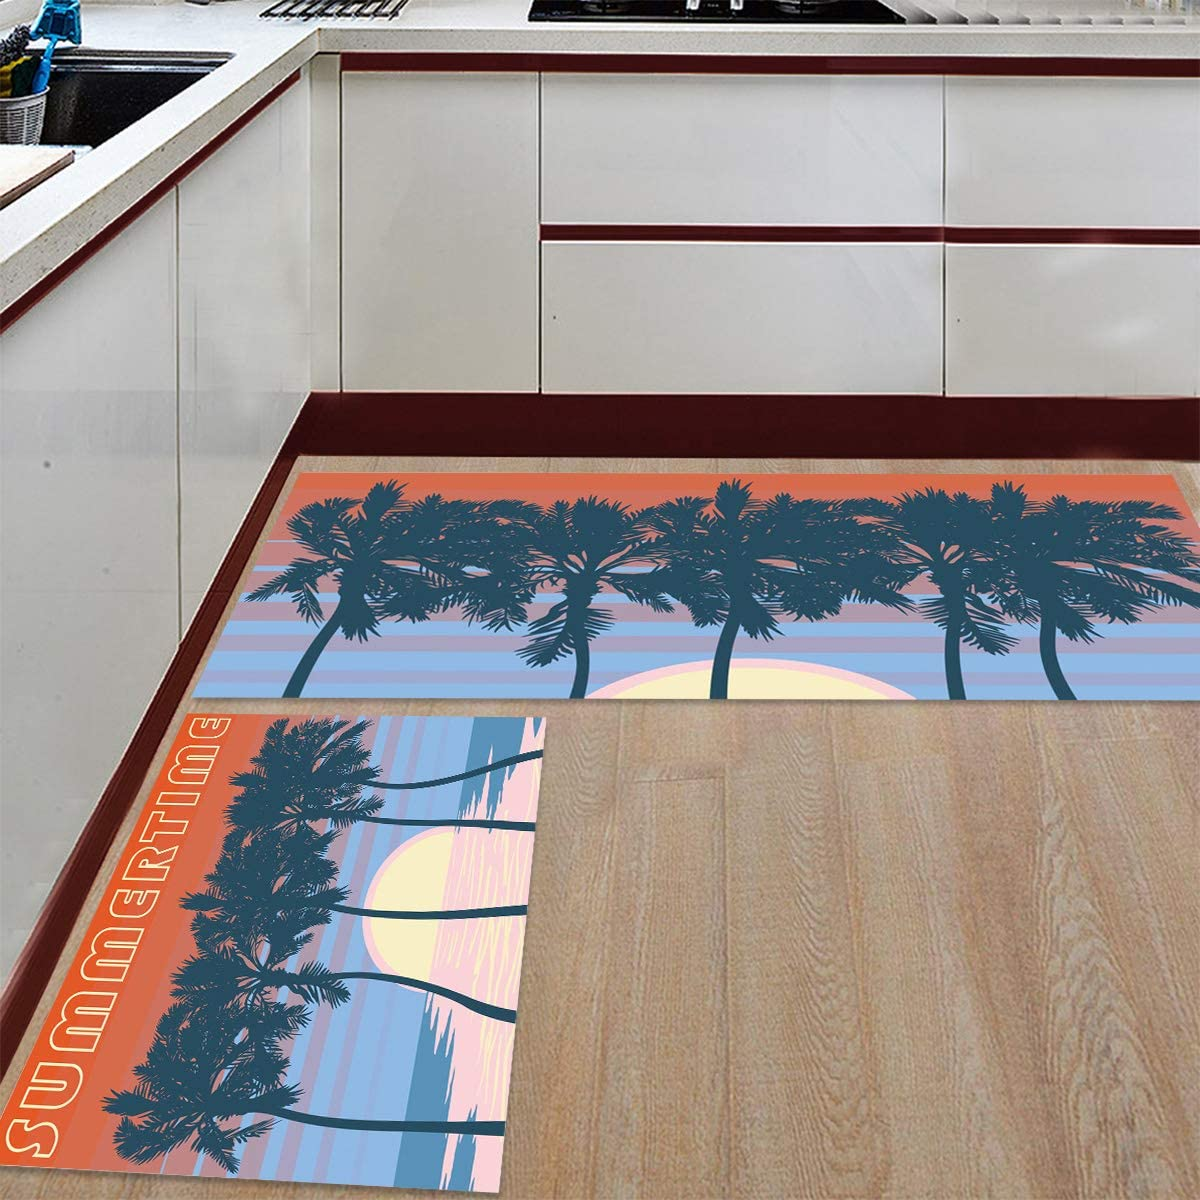 2 Pieces Anti-Slip Kitchen Houston Mall Mats Evening and Trees En Sunset Wave Indefinitely